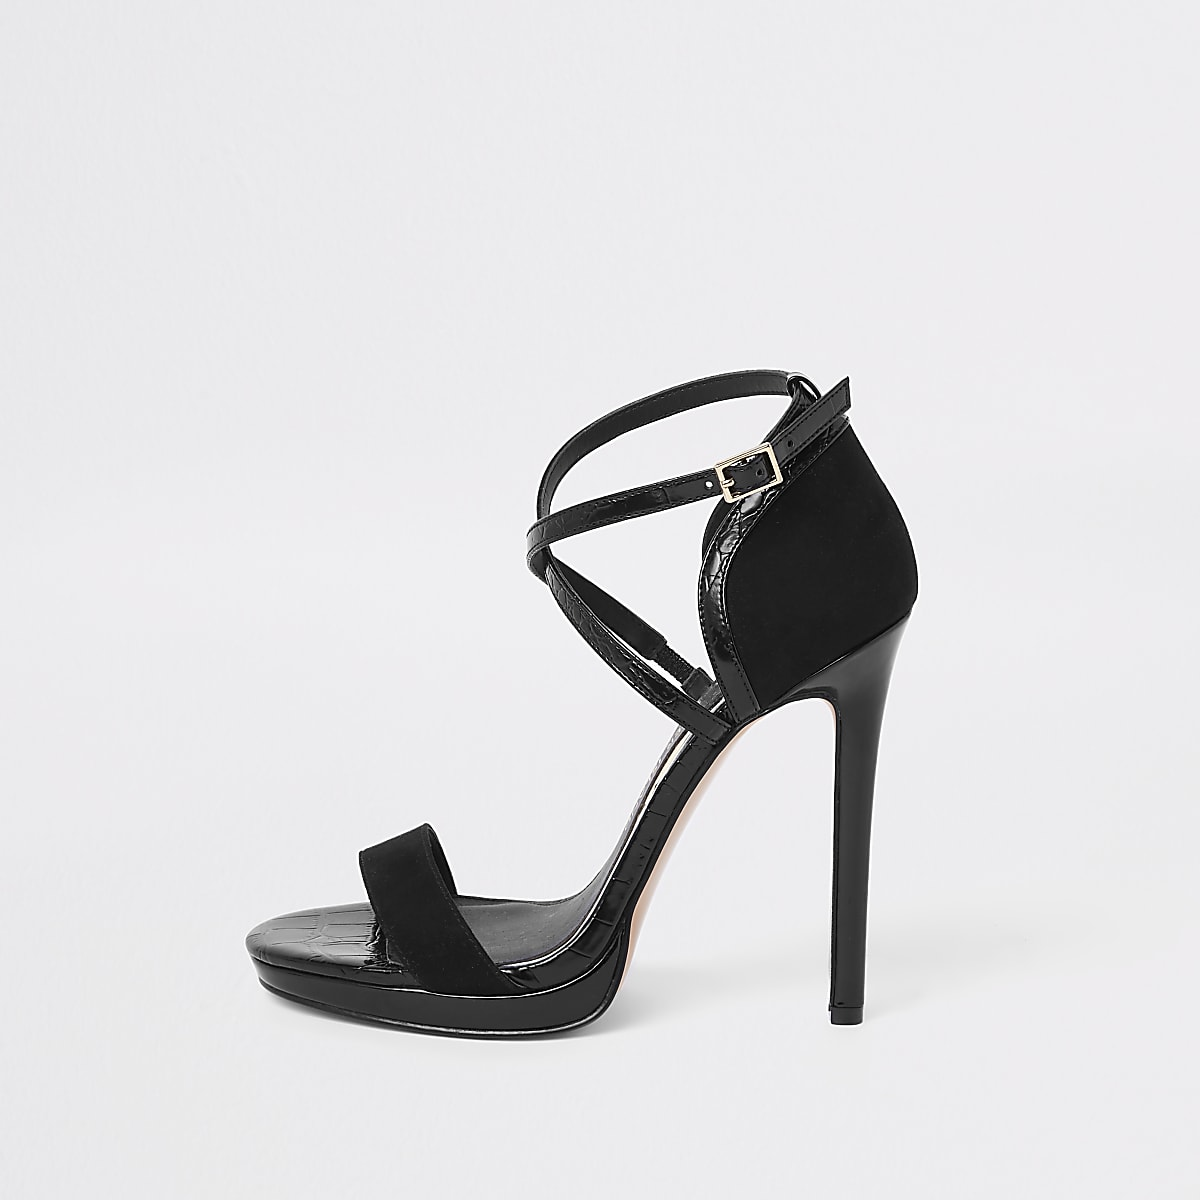 e0a60c93663 Black barely there platform sandals - Sandals - Shoes   Boots - women